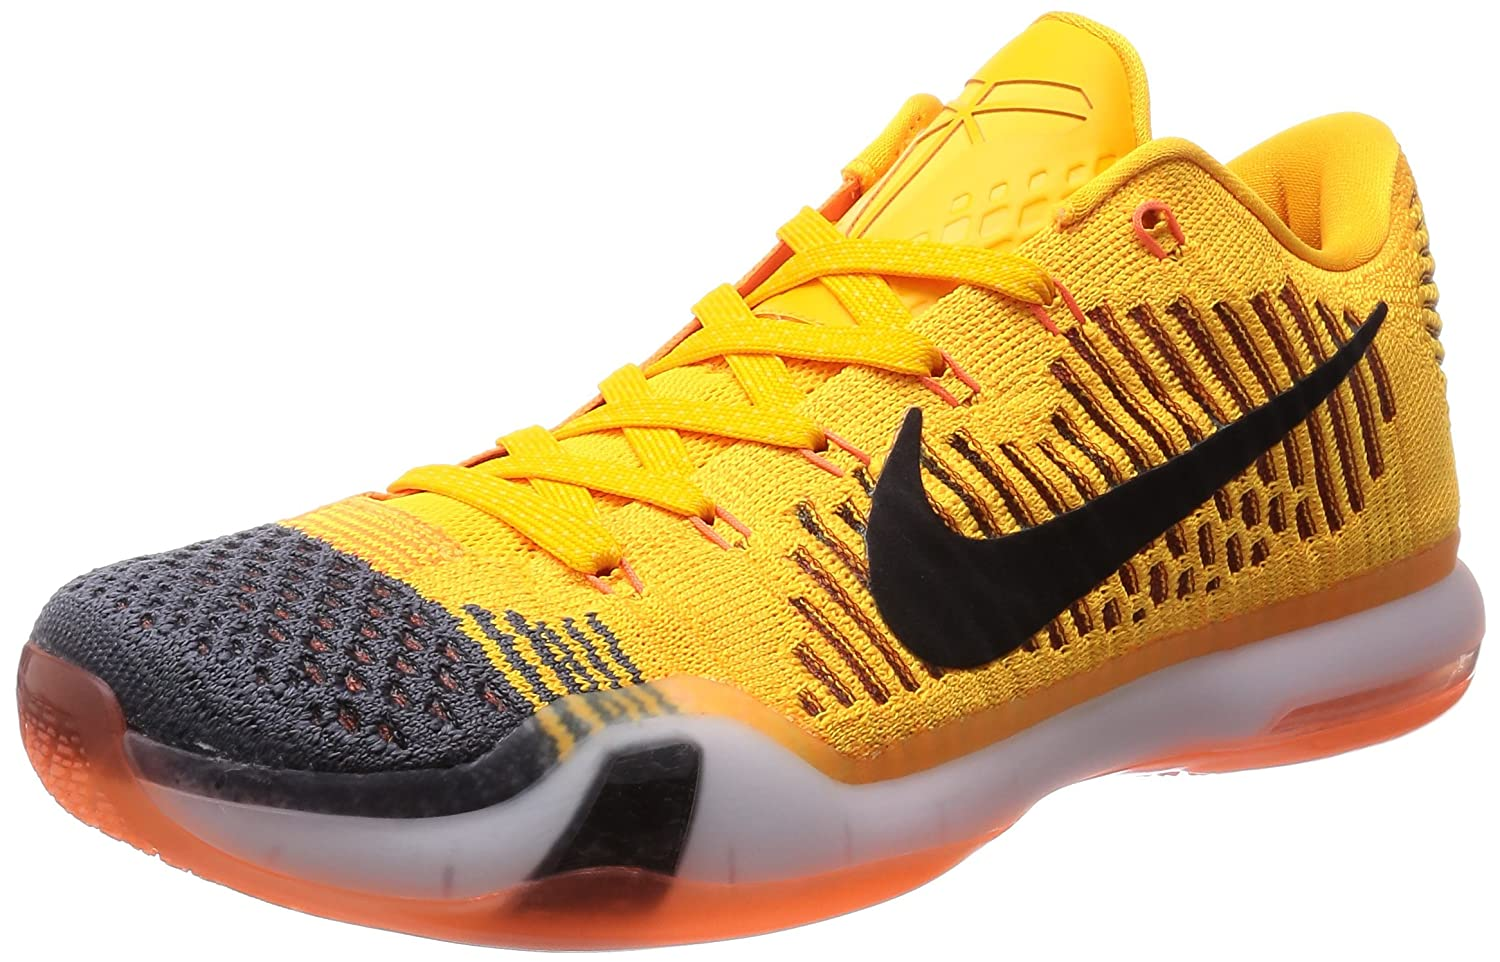 new product 1cae2 52330 ... feet video at exclucity youtube 524dd 60ccd  order best mens nike kobe  x 10 elite low rivalry chester total orange black grey 747212